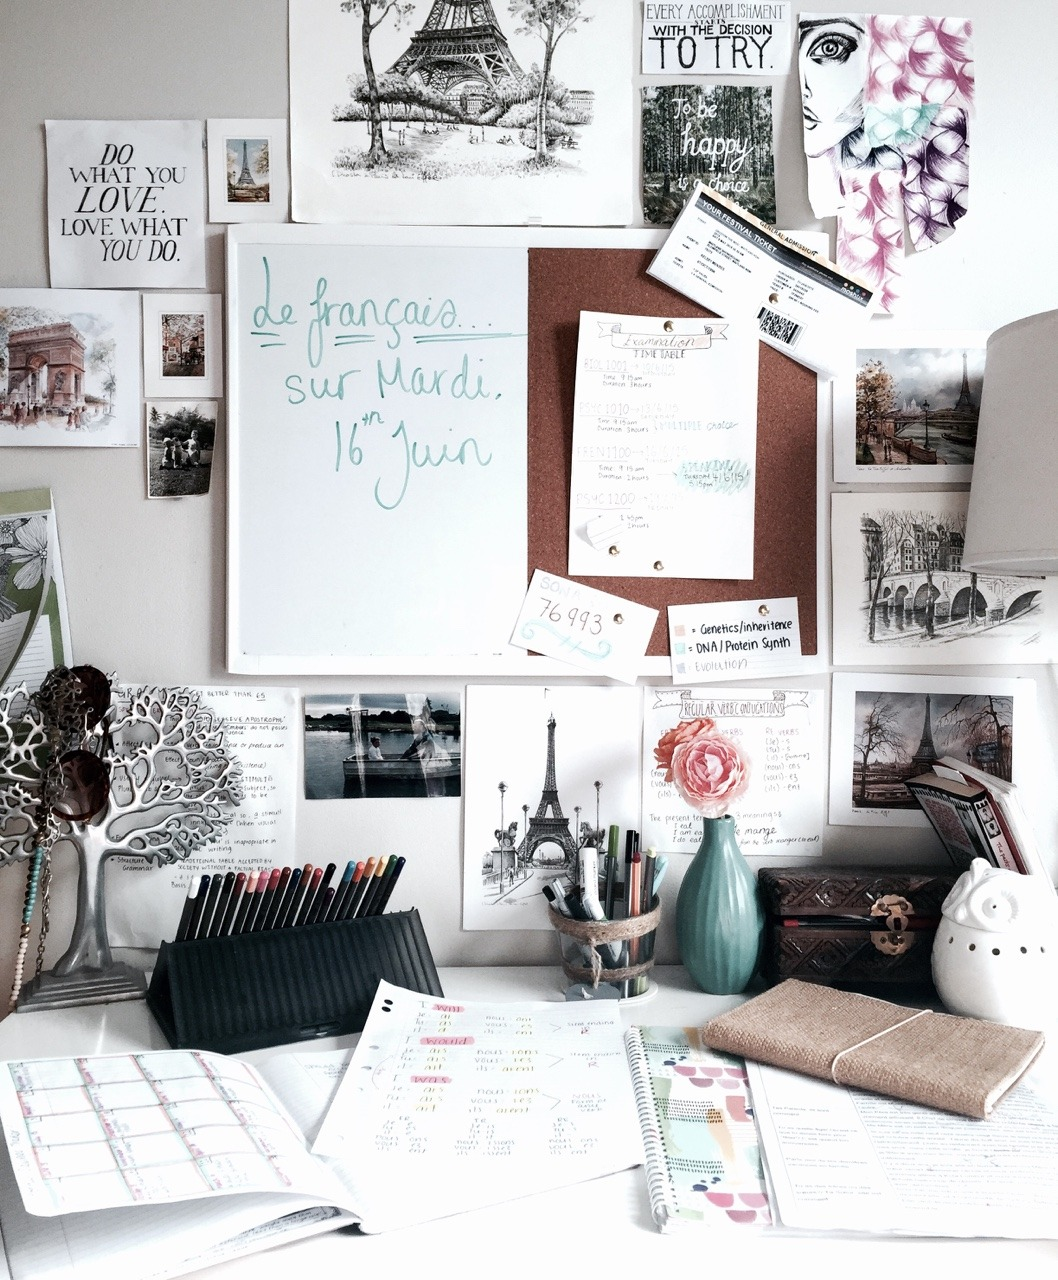 Bedroom Desk Tumblr French Study French Posters French Books French